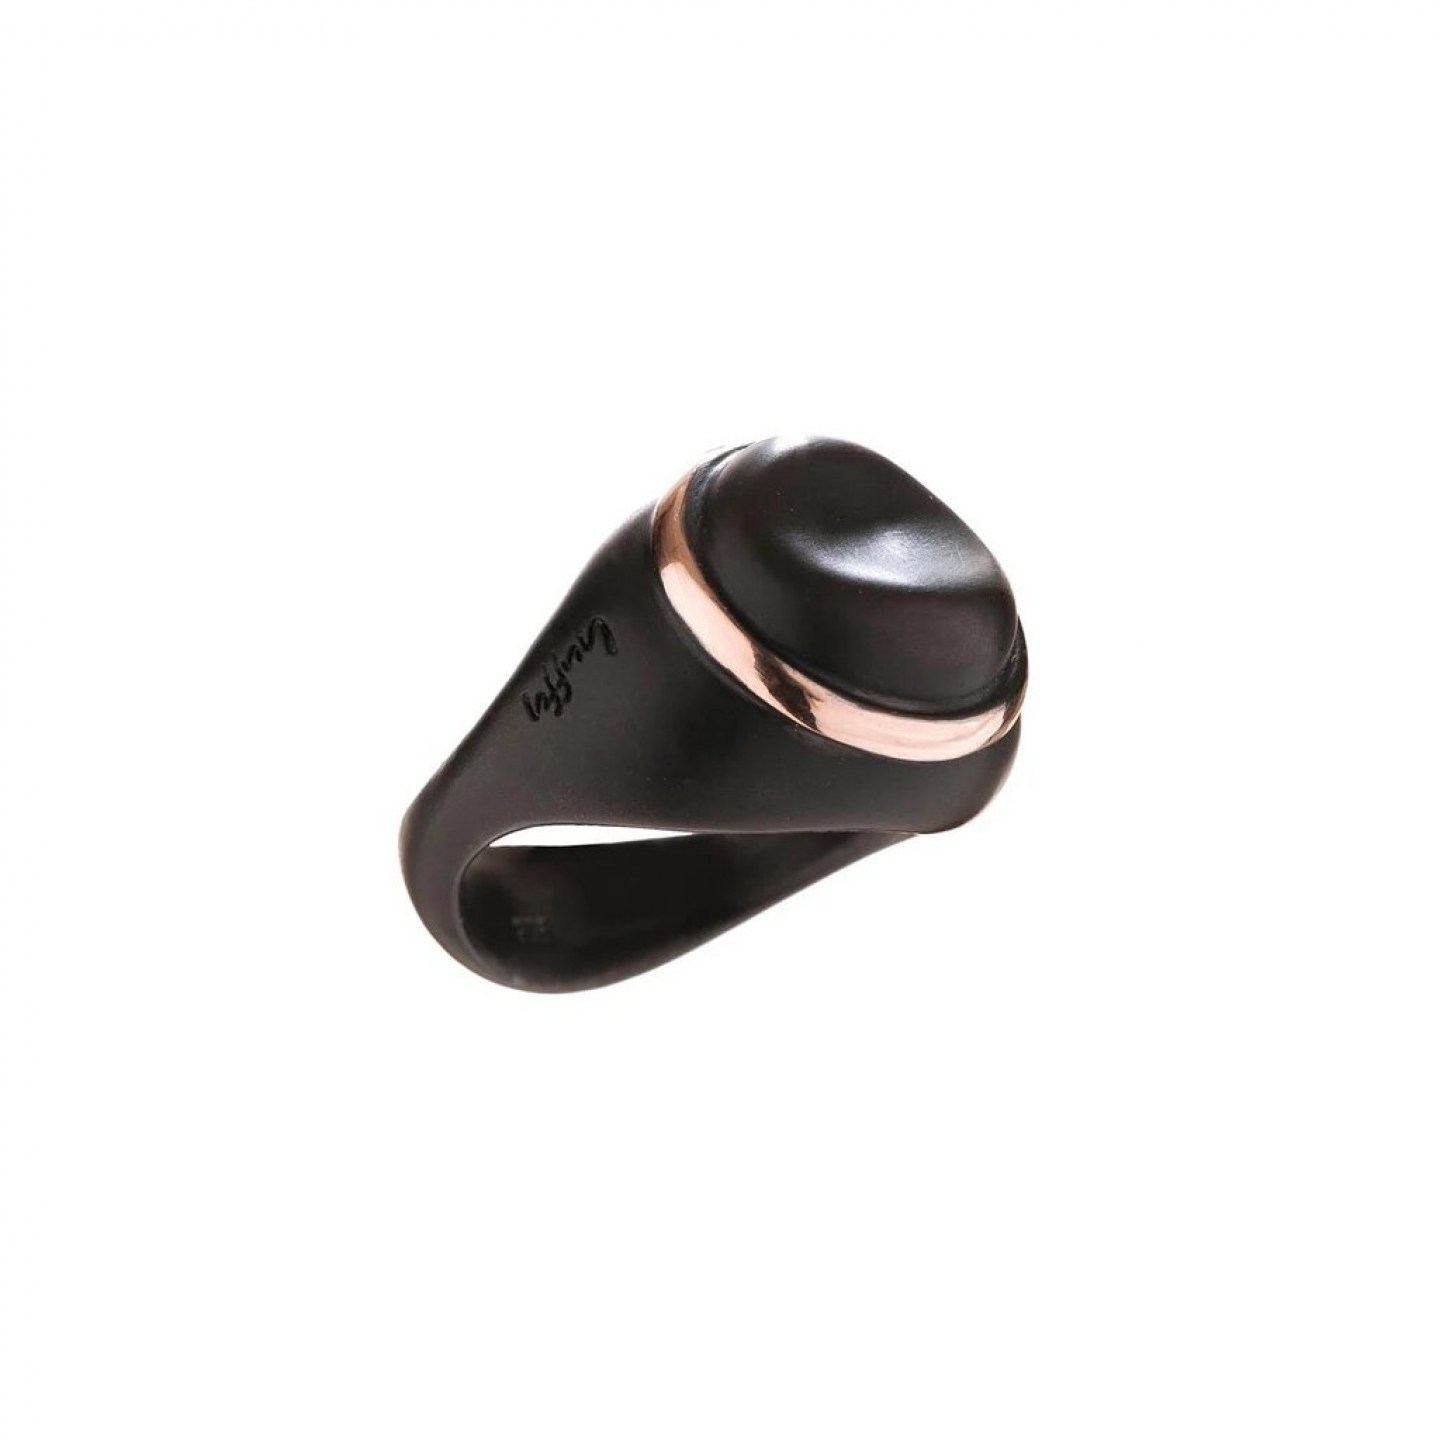 Ring in 925° black plated silver and 9K rose gold.